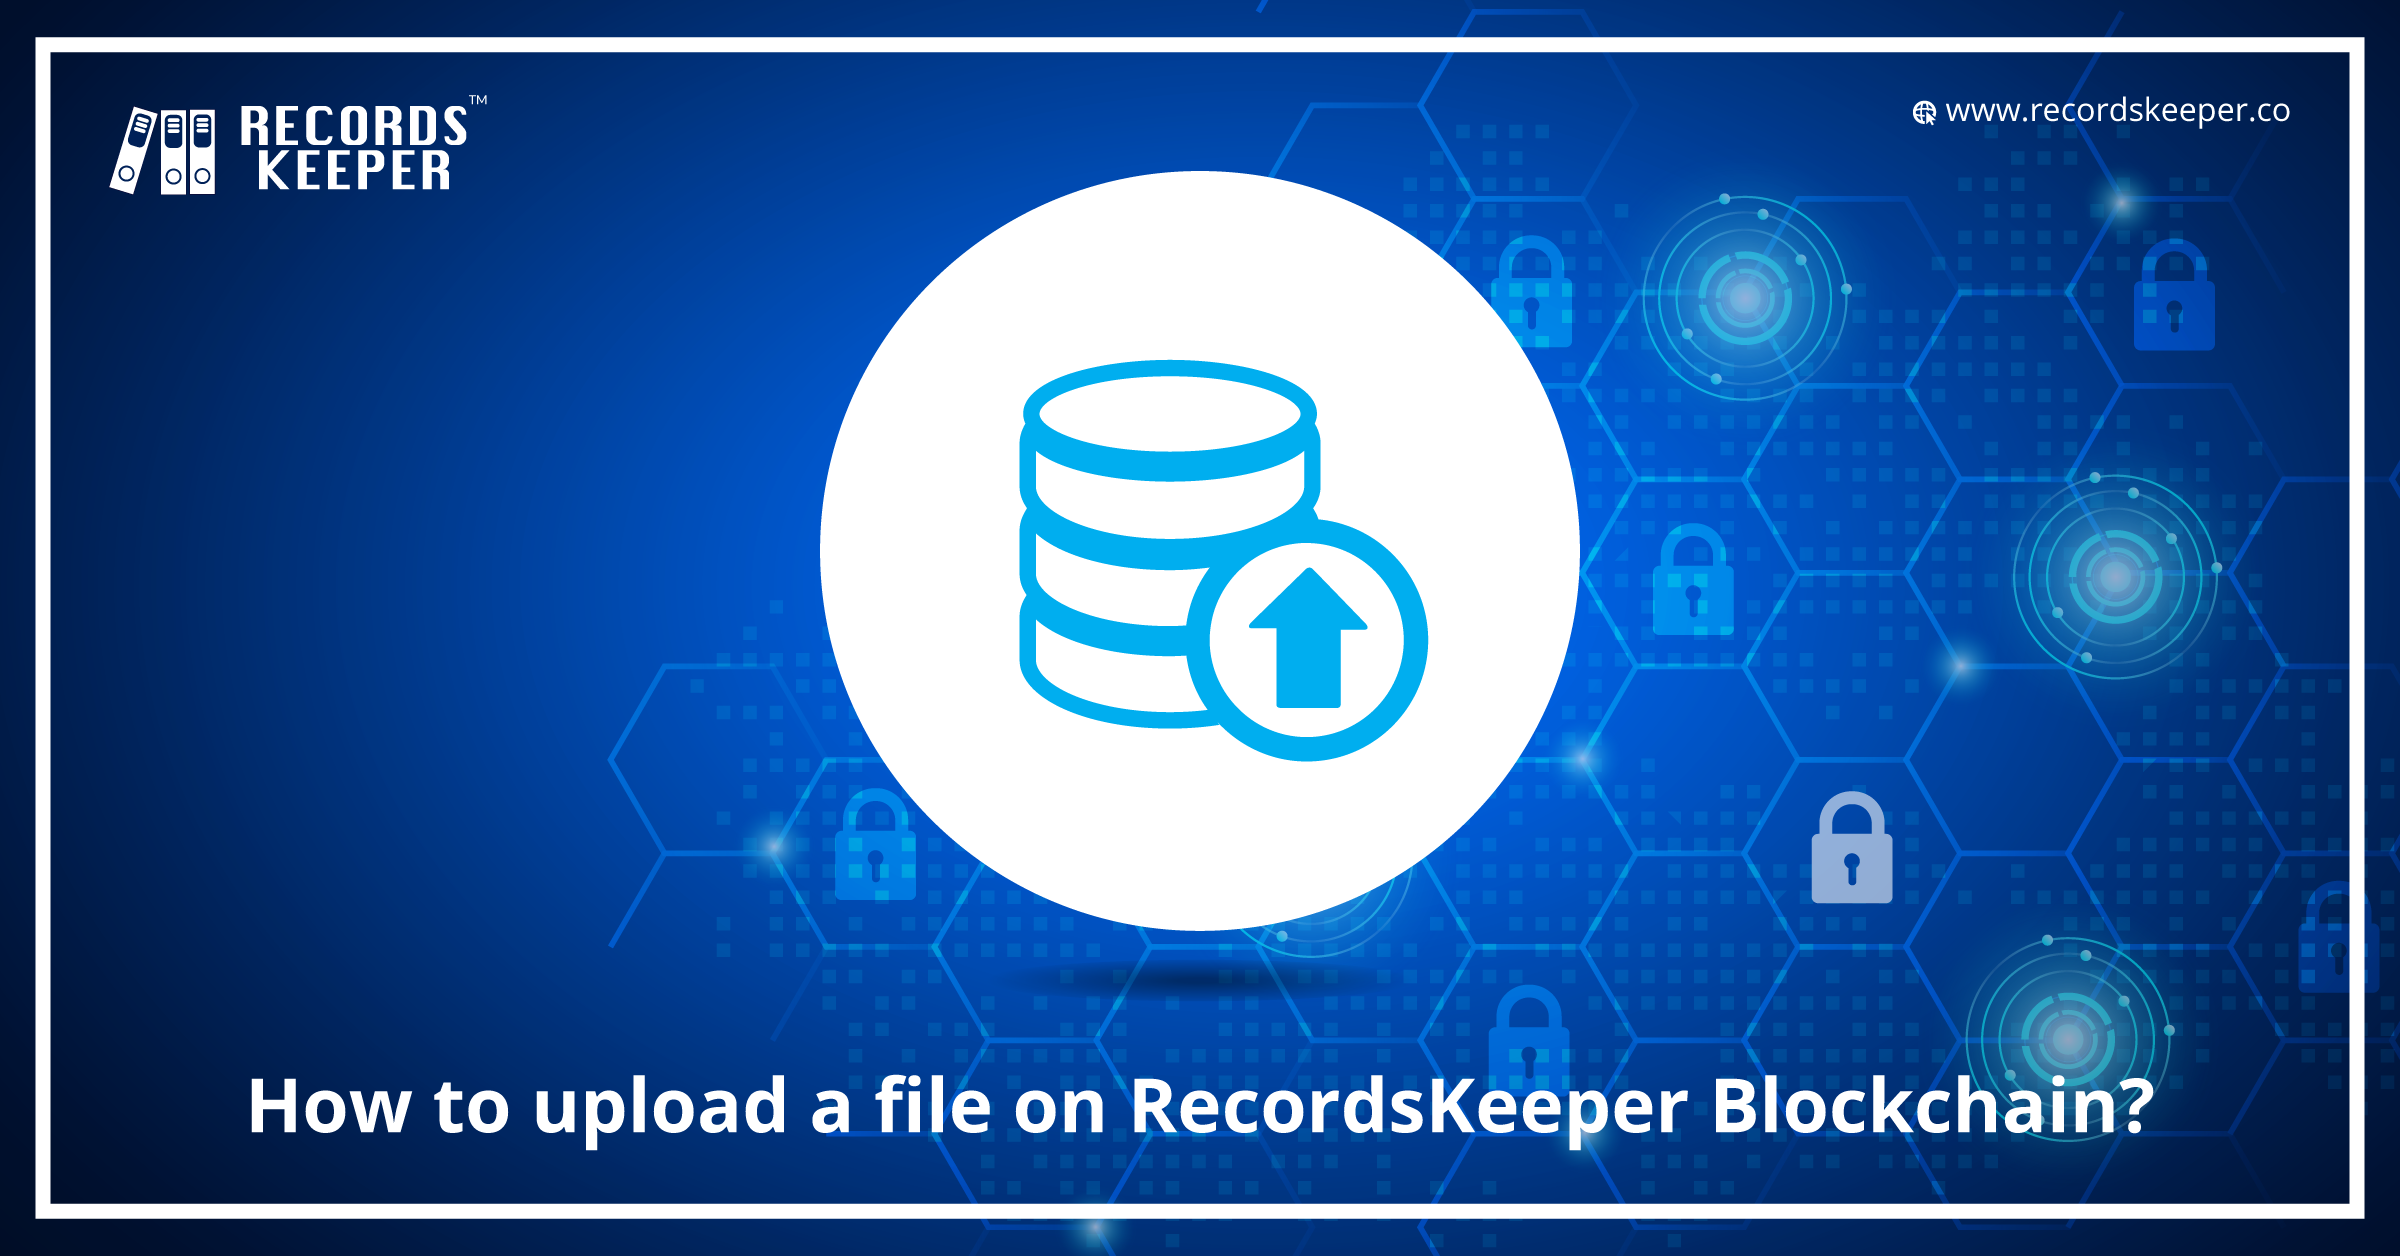 How to upload a file on RecordsKeeper Blockchain?